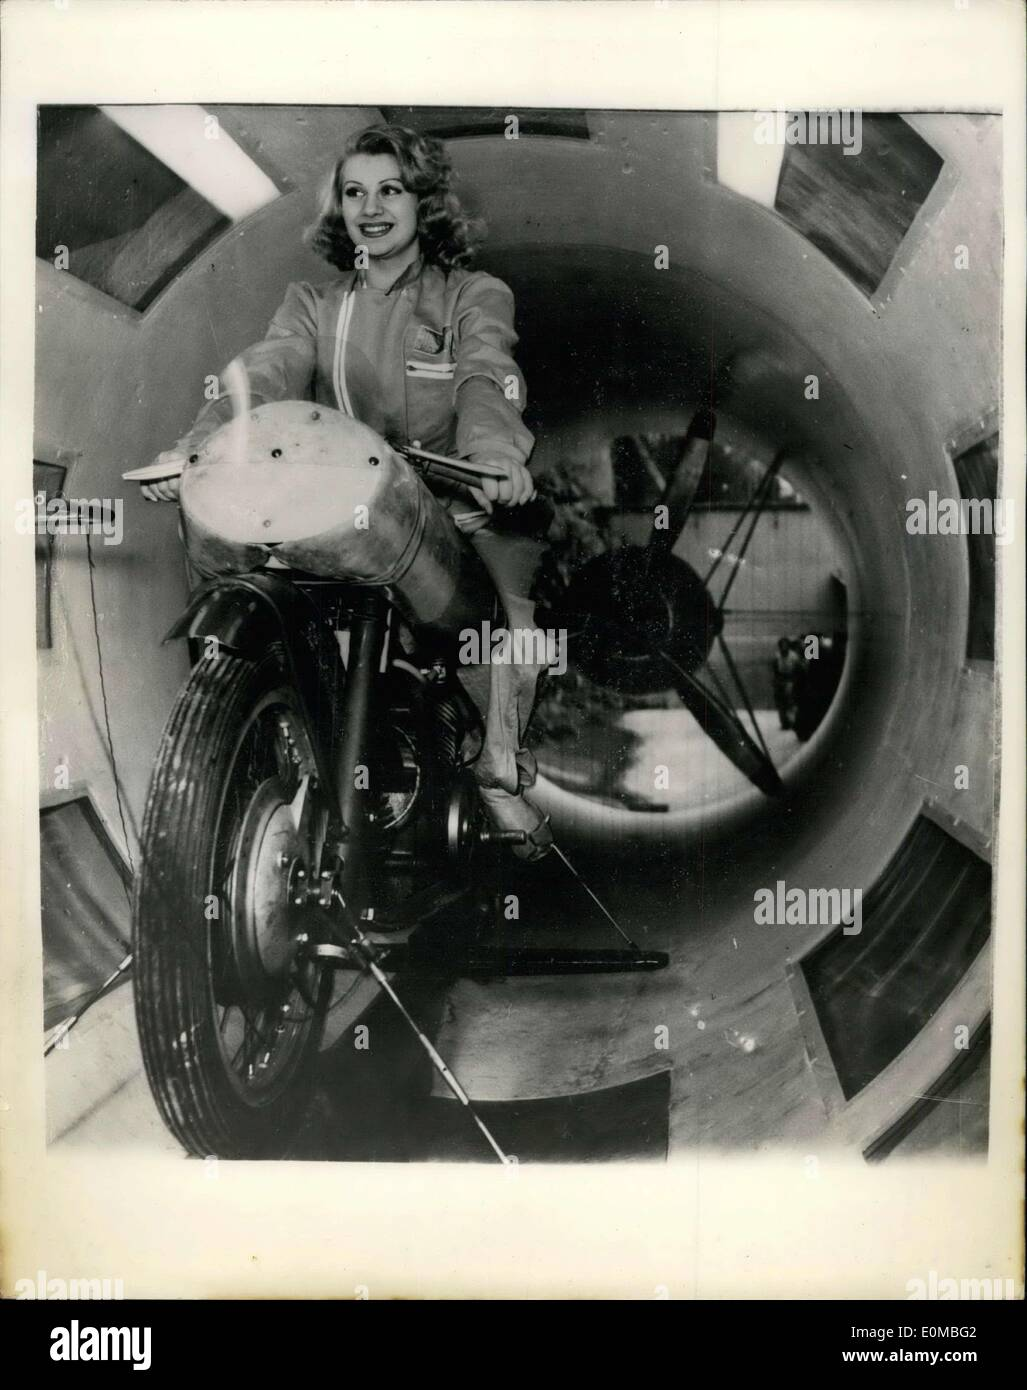 Jul. 19, 1954 - Italy's Moto Gizzi Cycle Company Completes Its Own Wind Tunnel: The Famous Italian Motor Cycle Company Moto Guzzi has just introduced the world's first wind tunnel - specially constructed solely for the testing of new motor cycle designs.. The company has pent millions of Lira in research in motorcycle cycle design. which they see will yield big dividends in the forthcoming world International Races - Stock Image